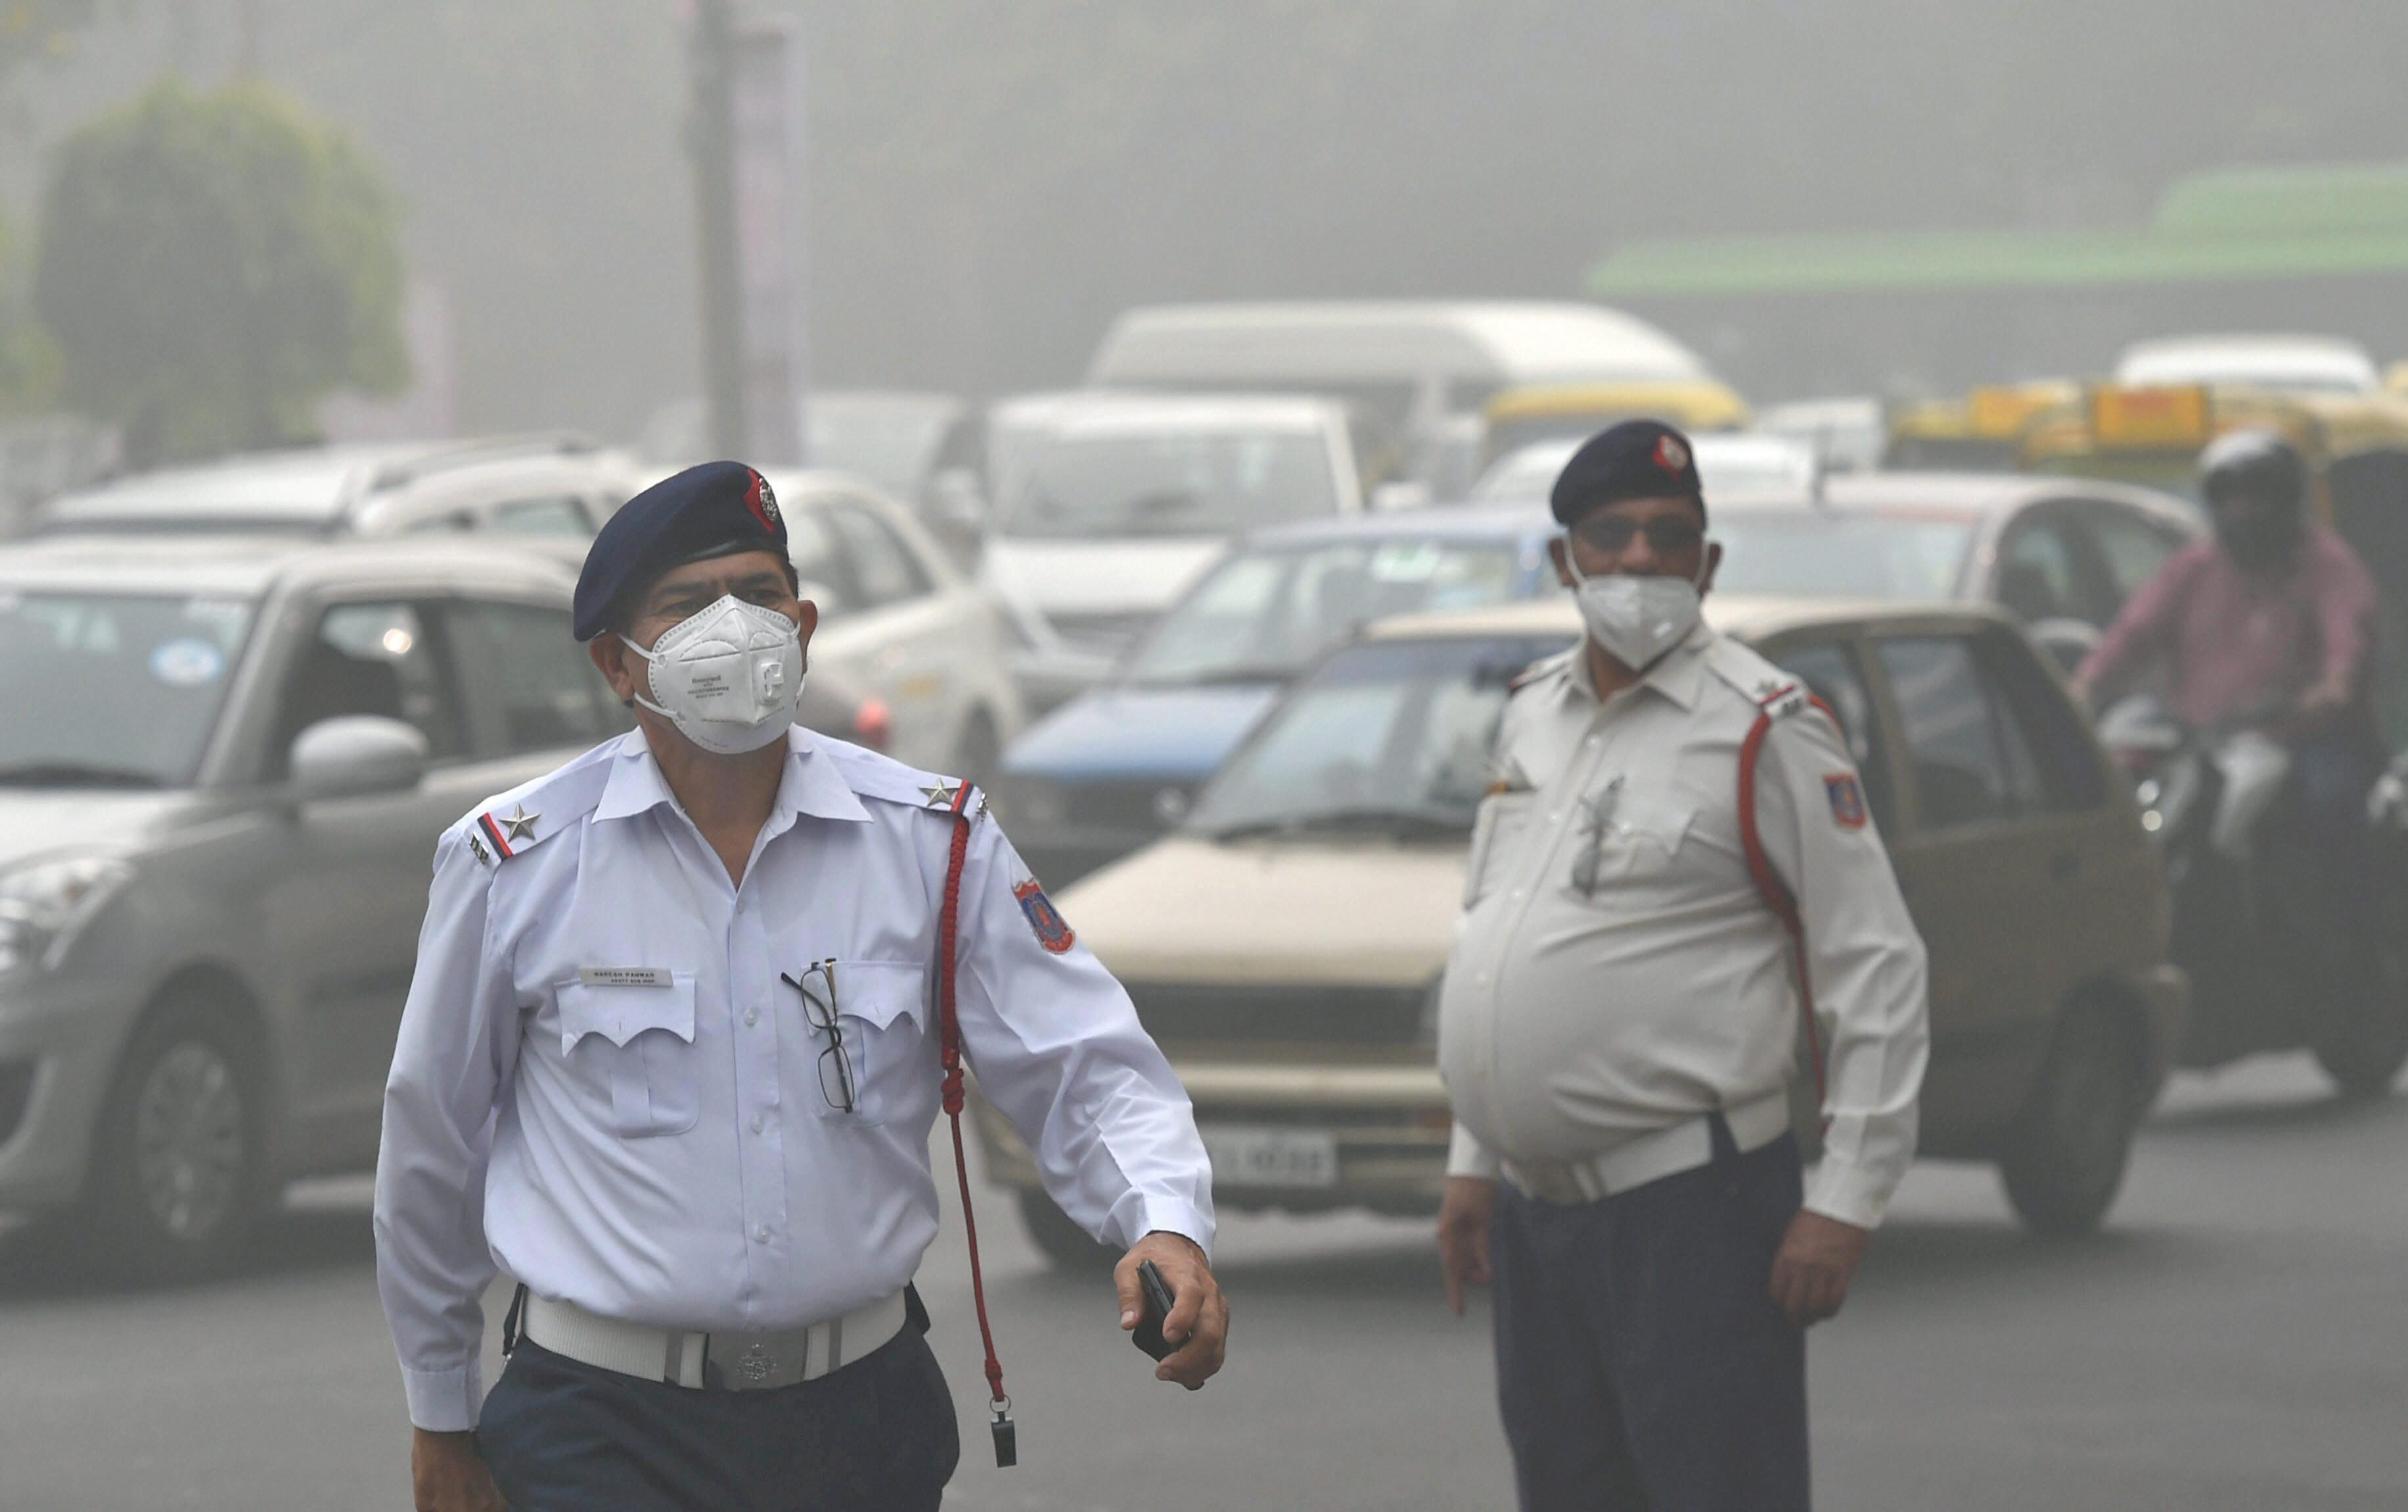 New Delhi: Traffic policemen wear masks to protect themselves from heavy smog and air pollution while manning the traffic, in New Delhi on Wednesday. The smog and air pollution continue to be above the severe levels in Delhi NCR on Tuesday. PTI Photo by Kamal Kishore(PTI11_8_2017_000037B)